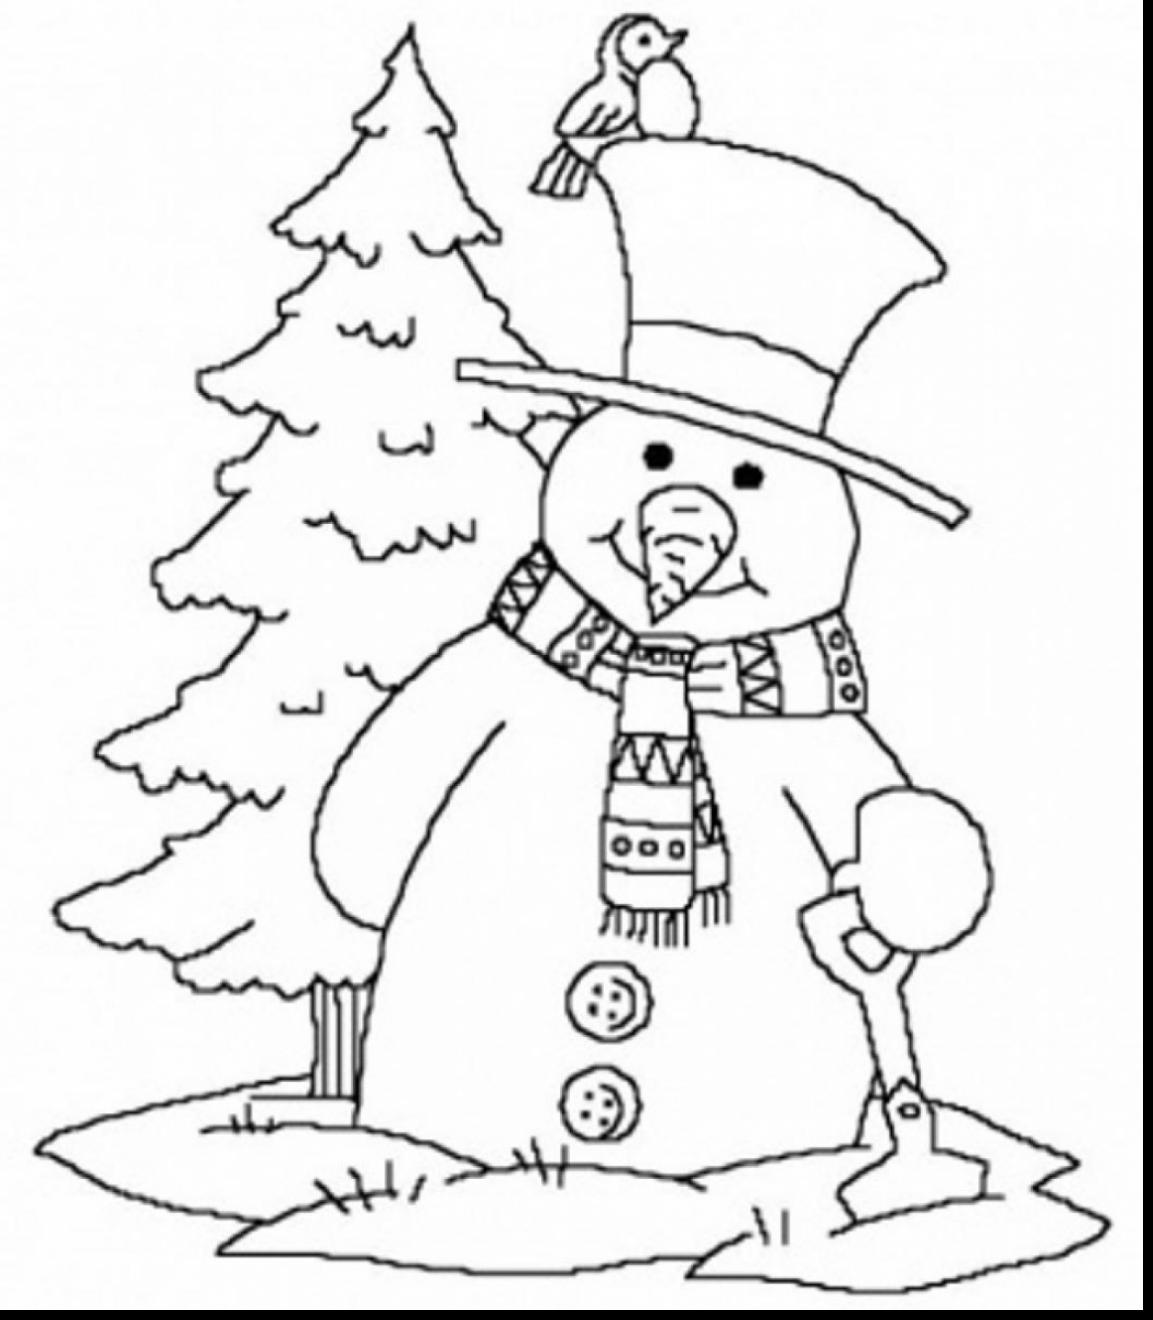 1153x1320 Superior Winter Tree Coloring Page With Bare